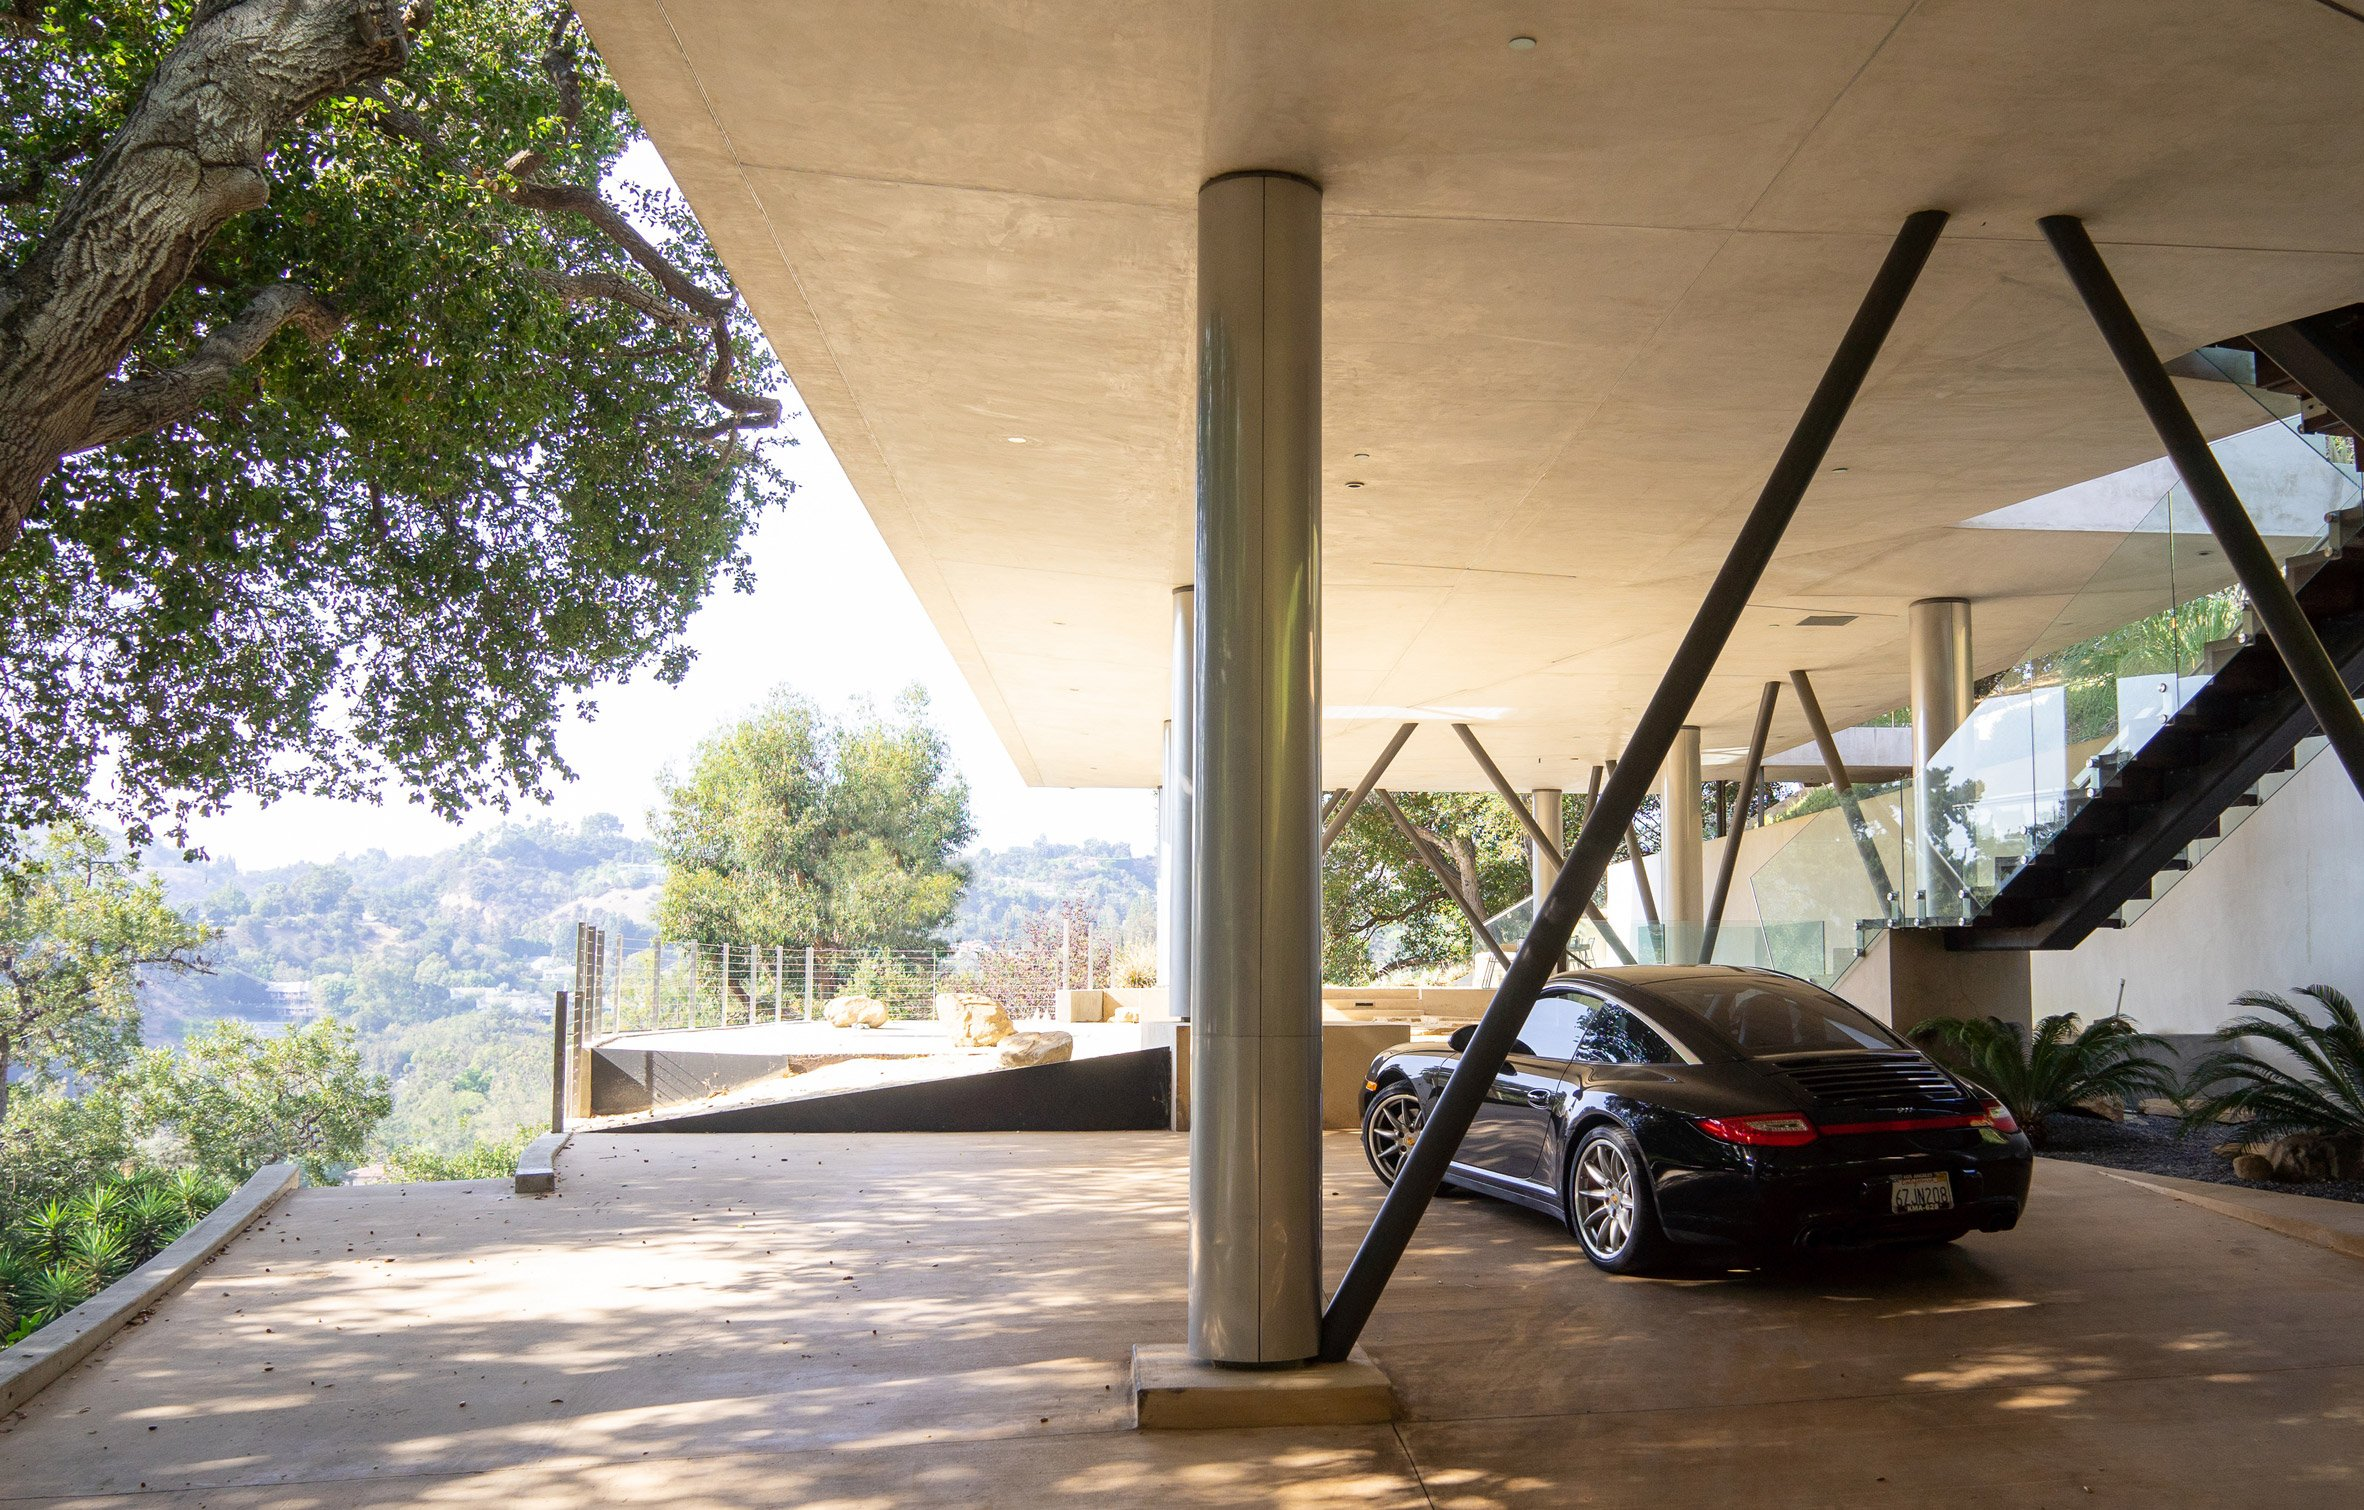 Parking space of Gerhard Heusch's Oak Pass Residence